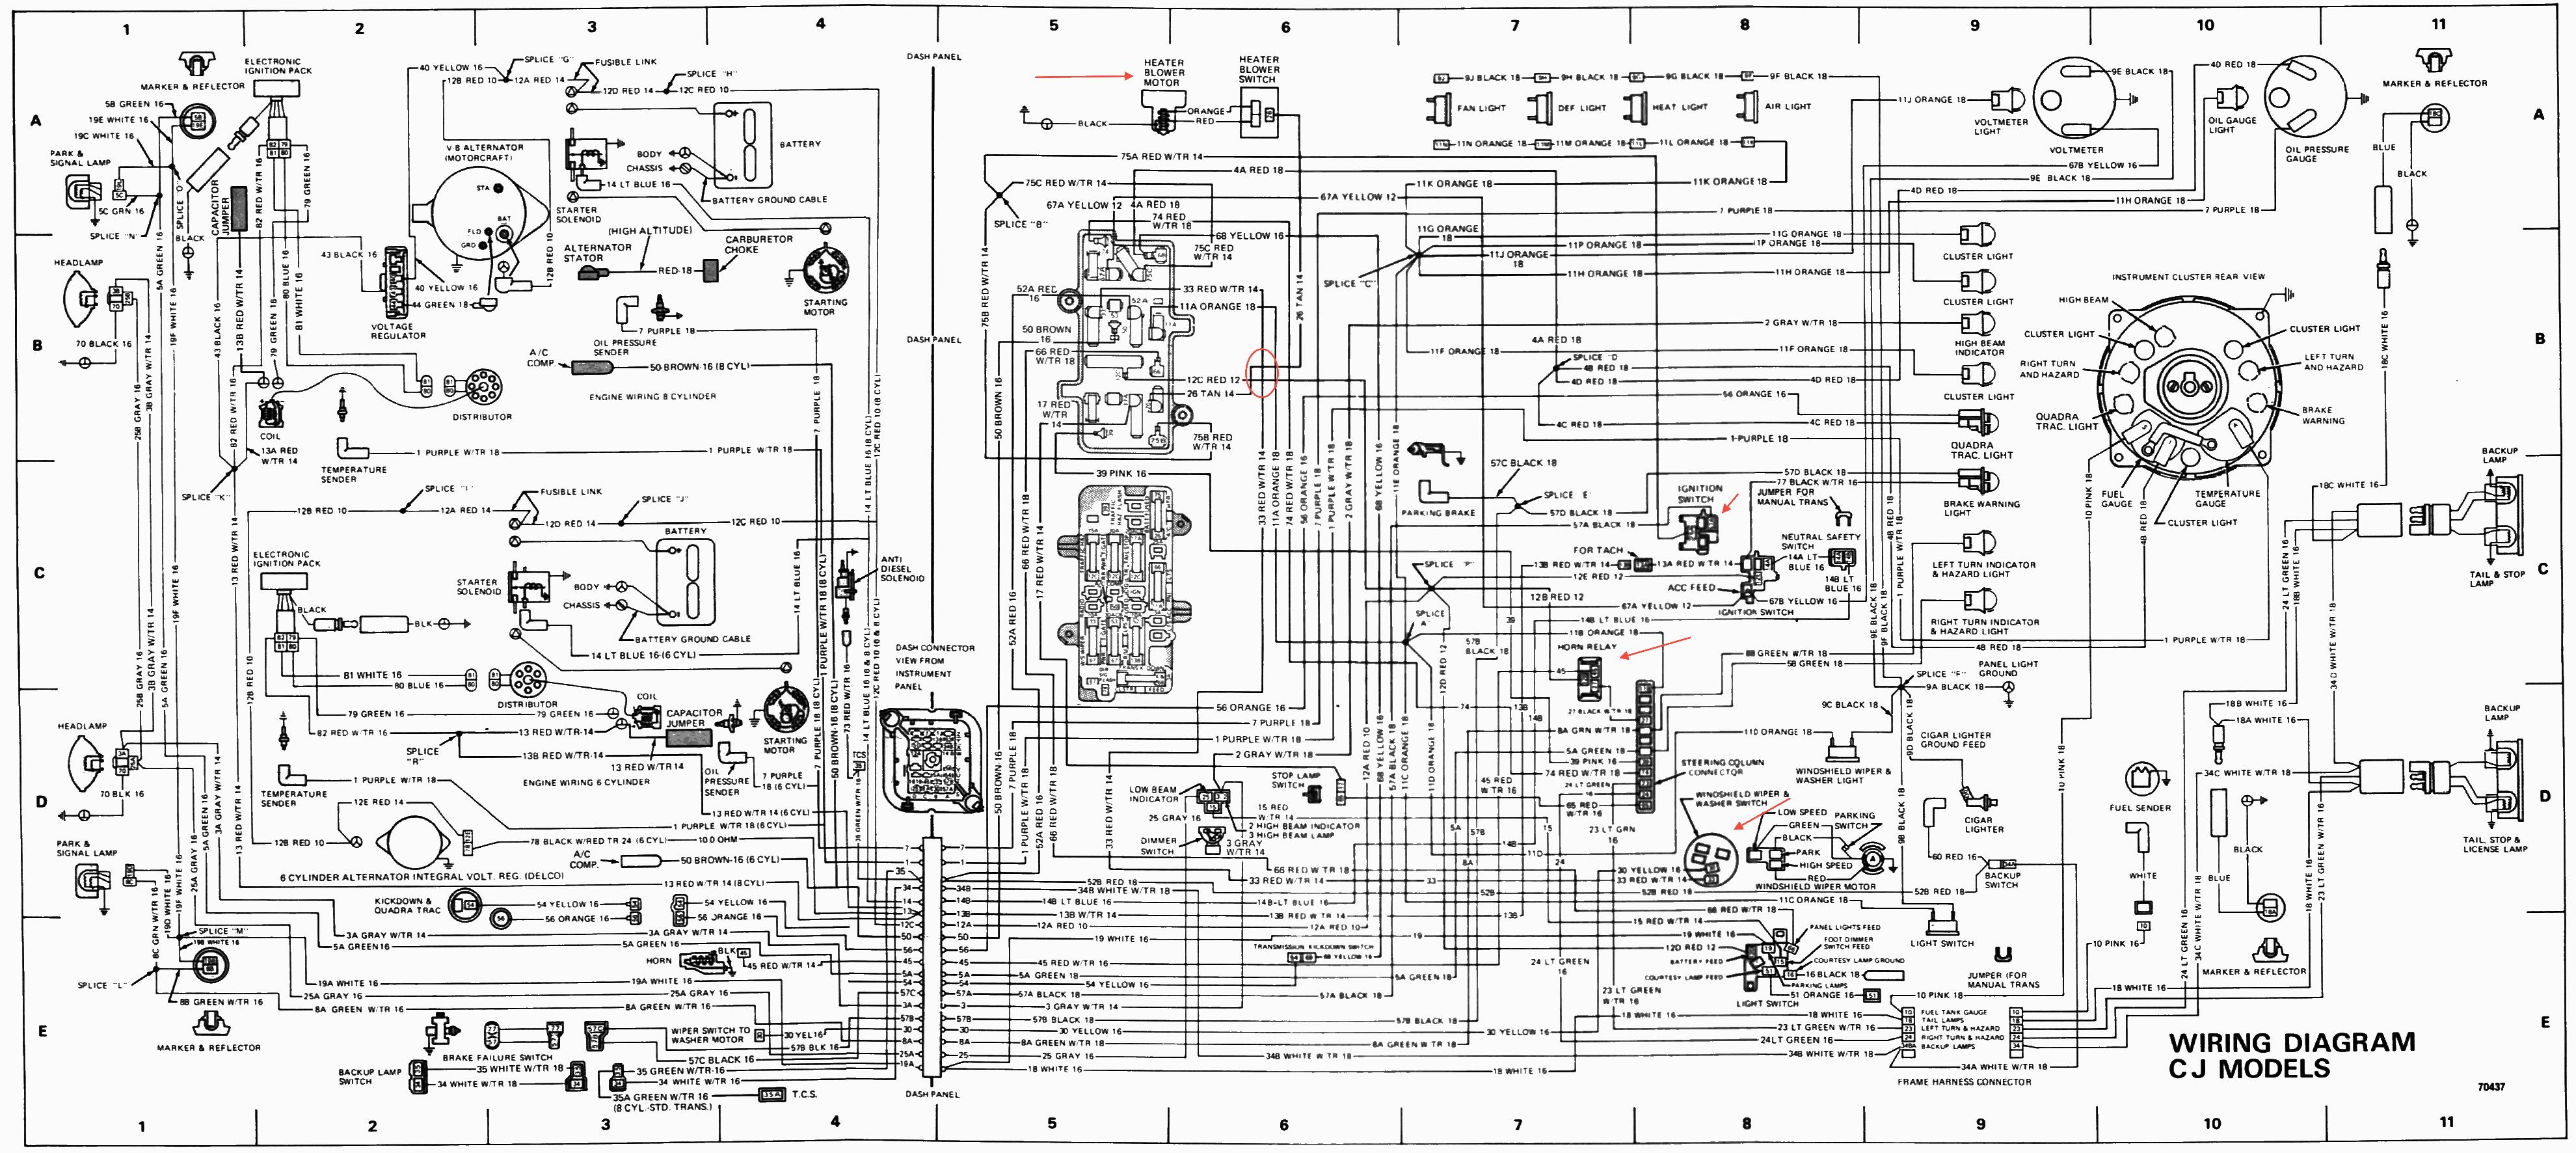 wiring diagram for 1983 jeep cj7 wiring diagram for 1983 jeep 1983 jeep wiring diagram 1983 auto wiring diagram database